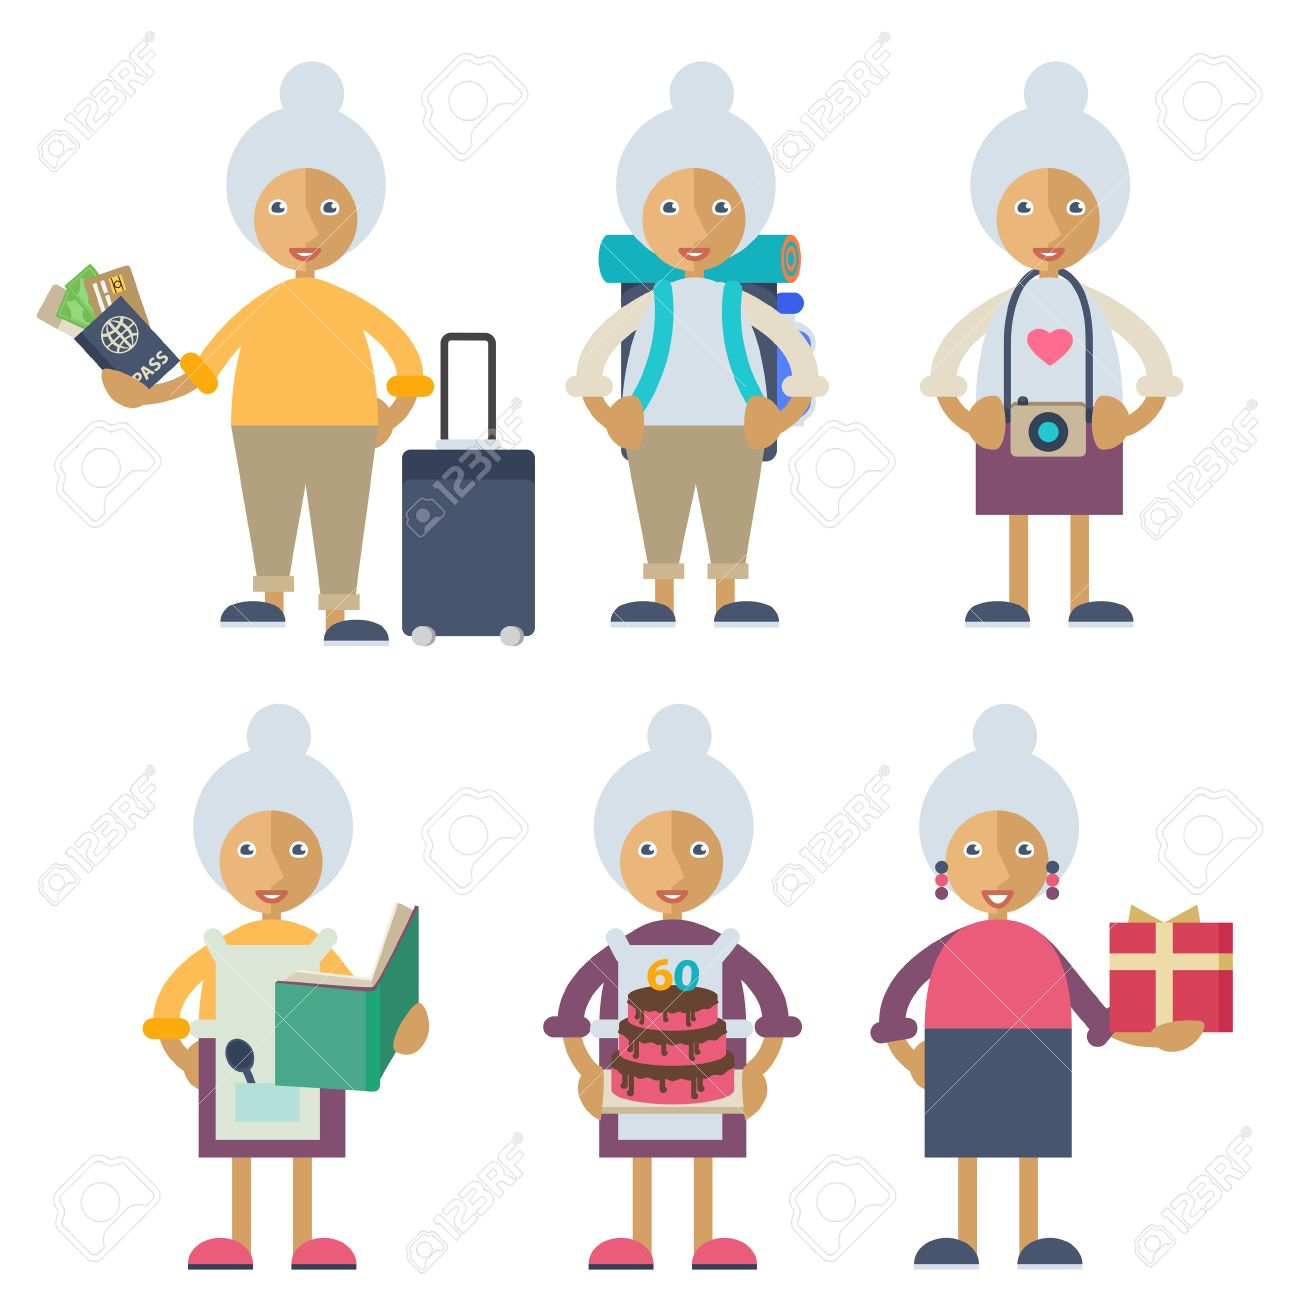 An old woman preparing for a trip, taking photos, cooking, celebrating her birthday and preparing a present Stock Vector - 44592968